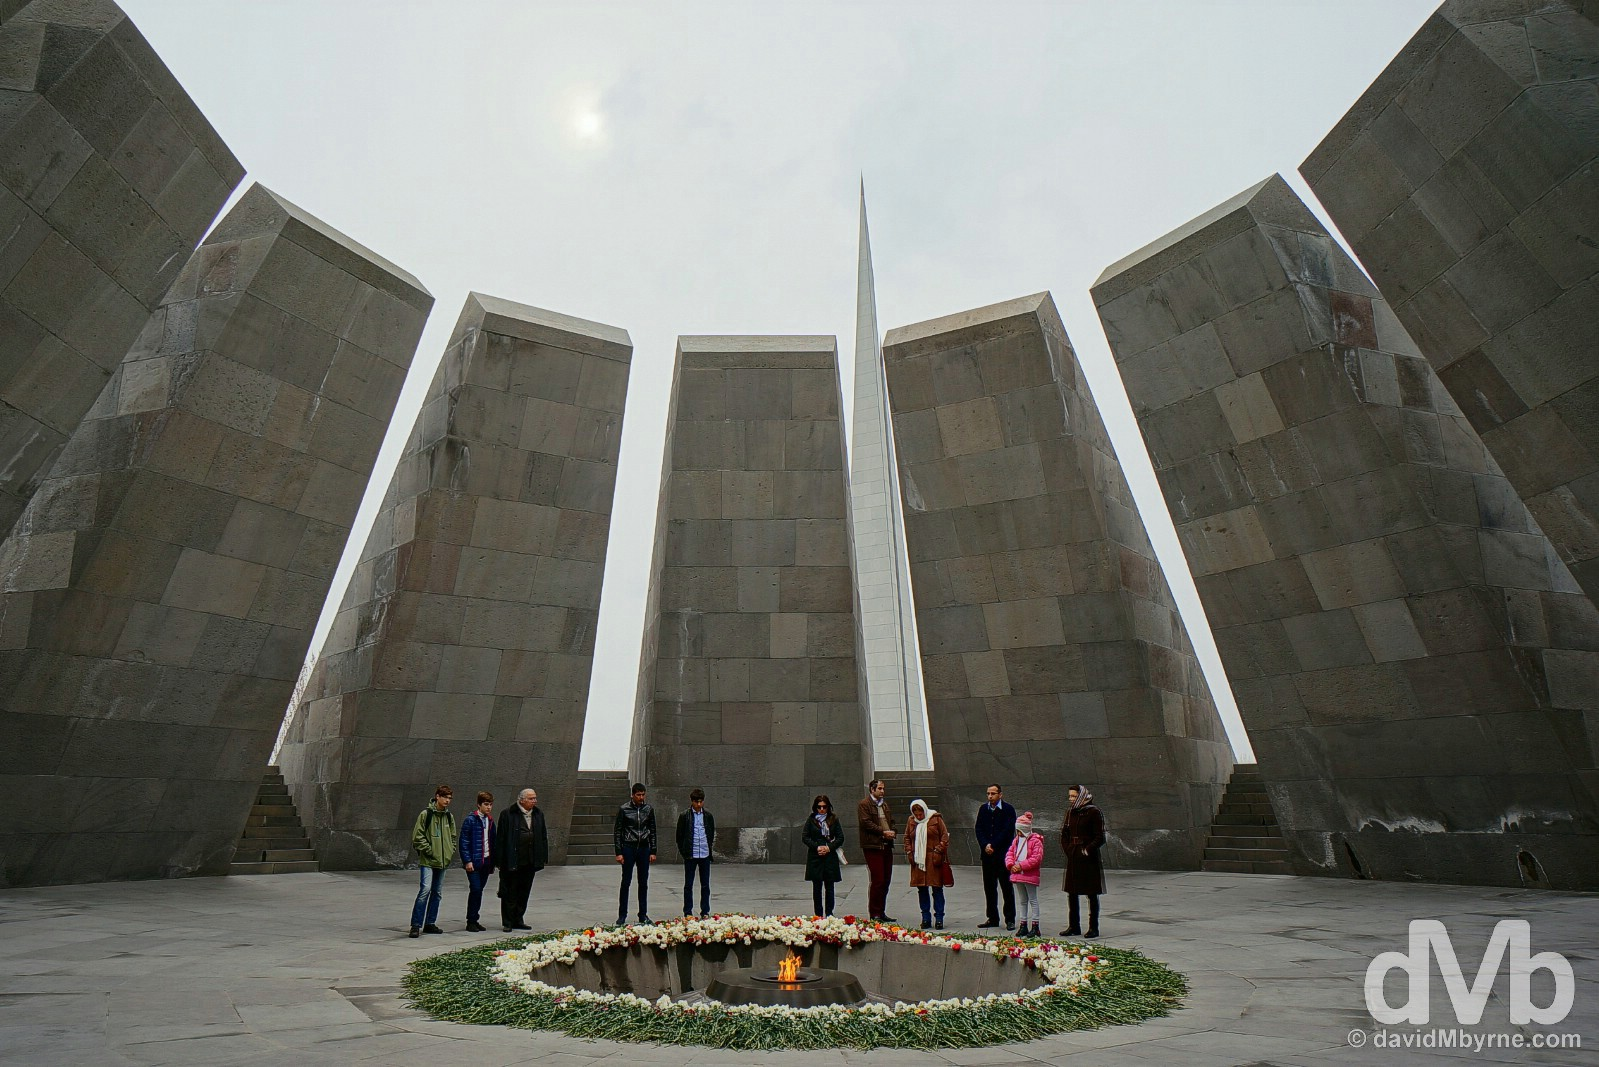 The memorial of Tsitsernakaberd, the Armenian Genocide Memorial & Museum in Yerevan, Armenia. March 24, 2015.